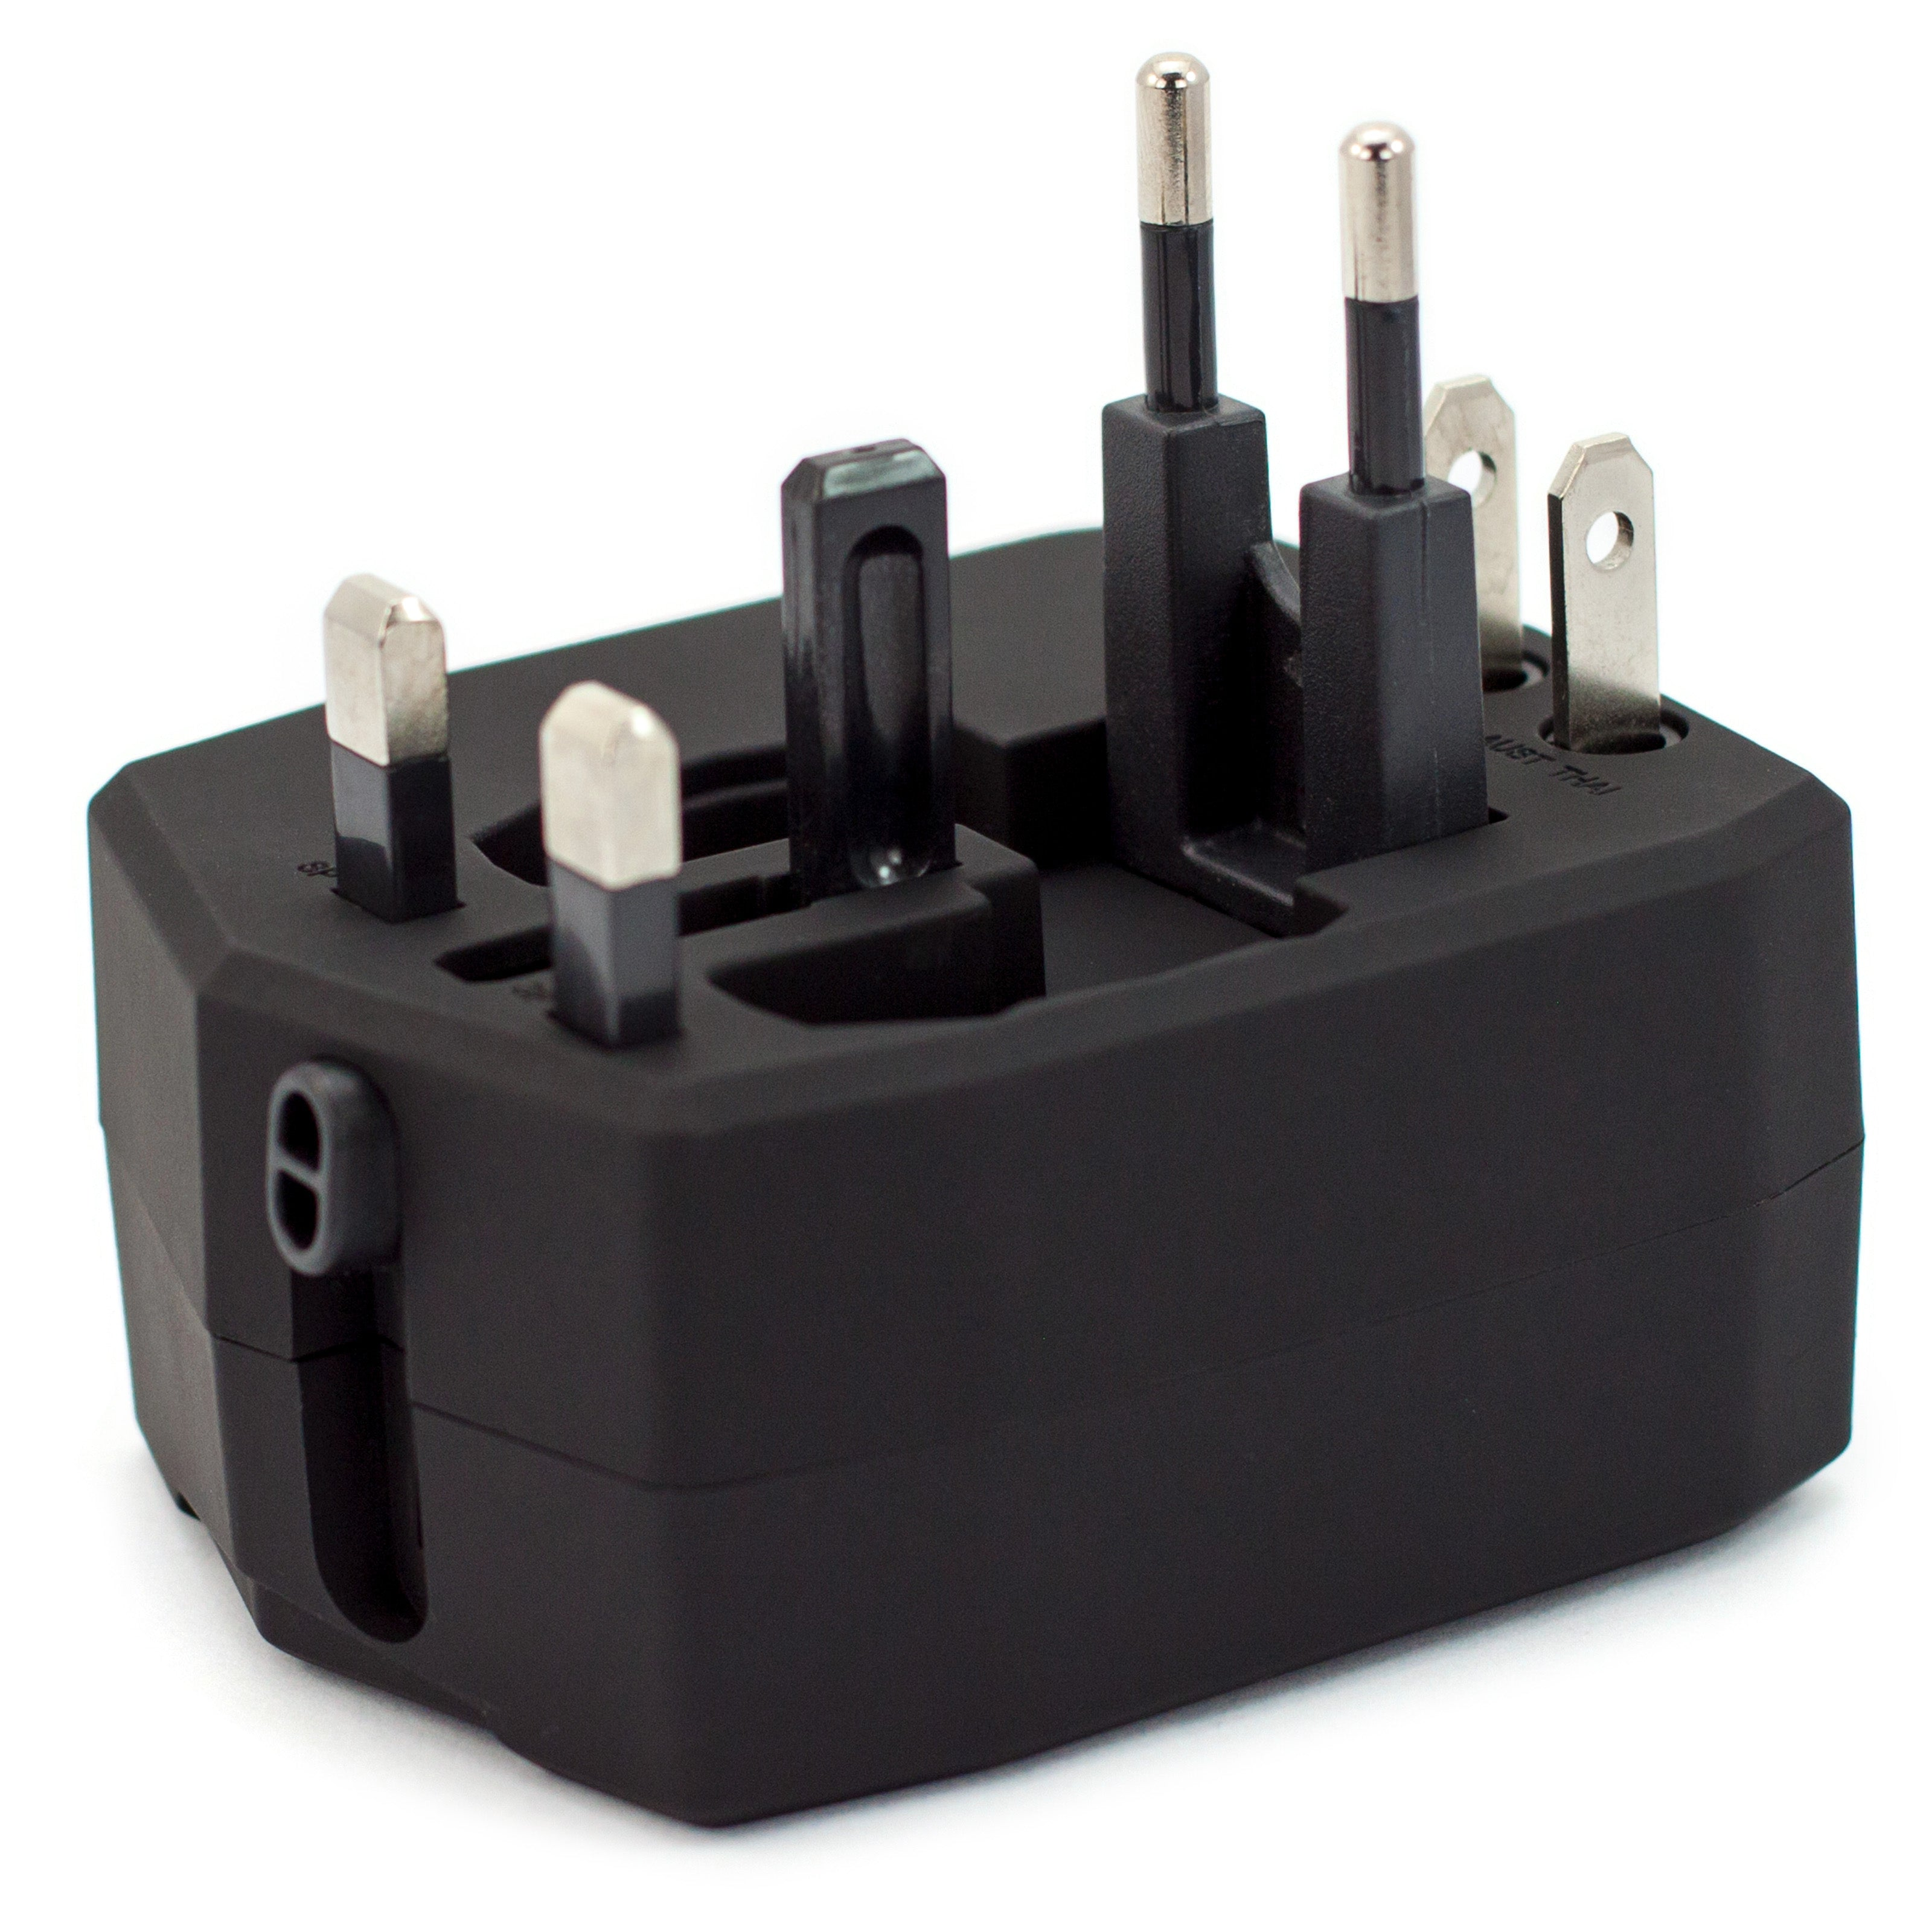 Travel Adapter with 2800mAh Power Bank and USB Ports - [variant_title] - Travellty